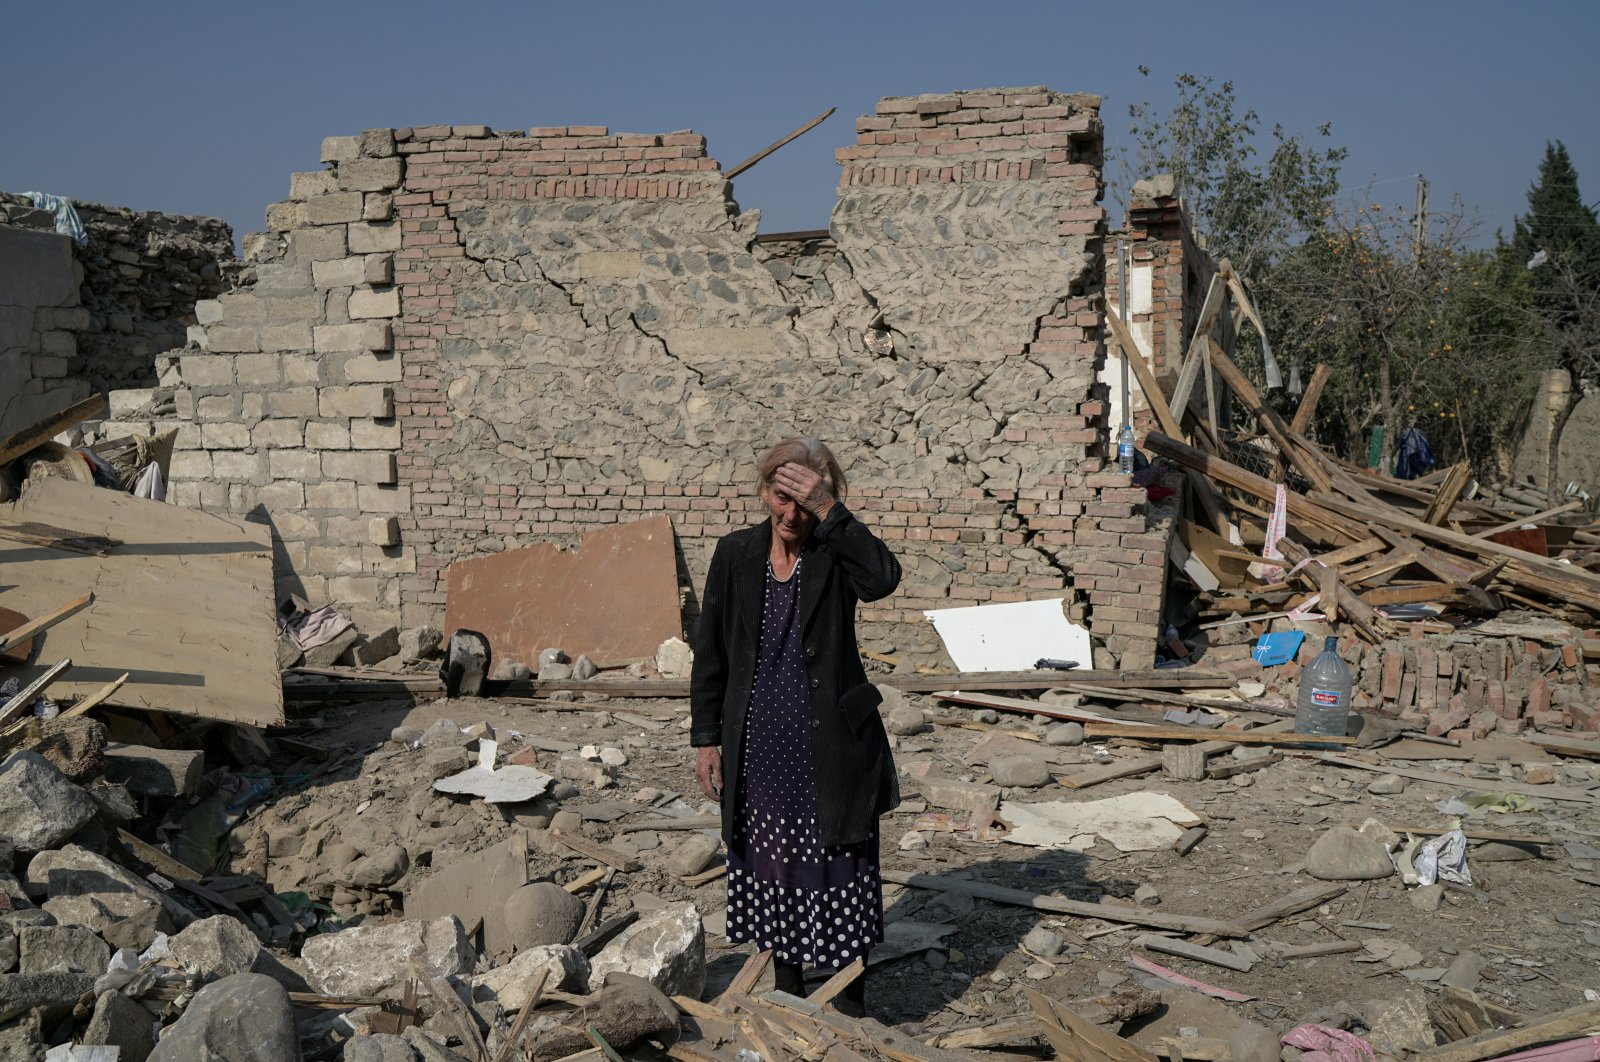 Regibe Guluyeva, 67, stands in the ruins of her home, which was hit by a rocket, in the city of Ganja, Azerbaijan, Oct. 18, 2020. (Reuters Photo)